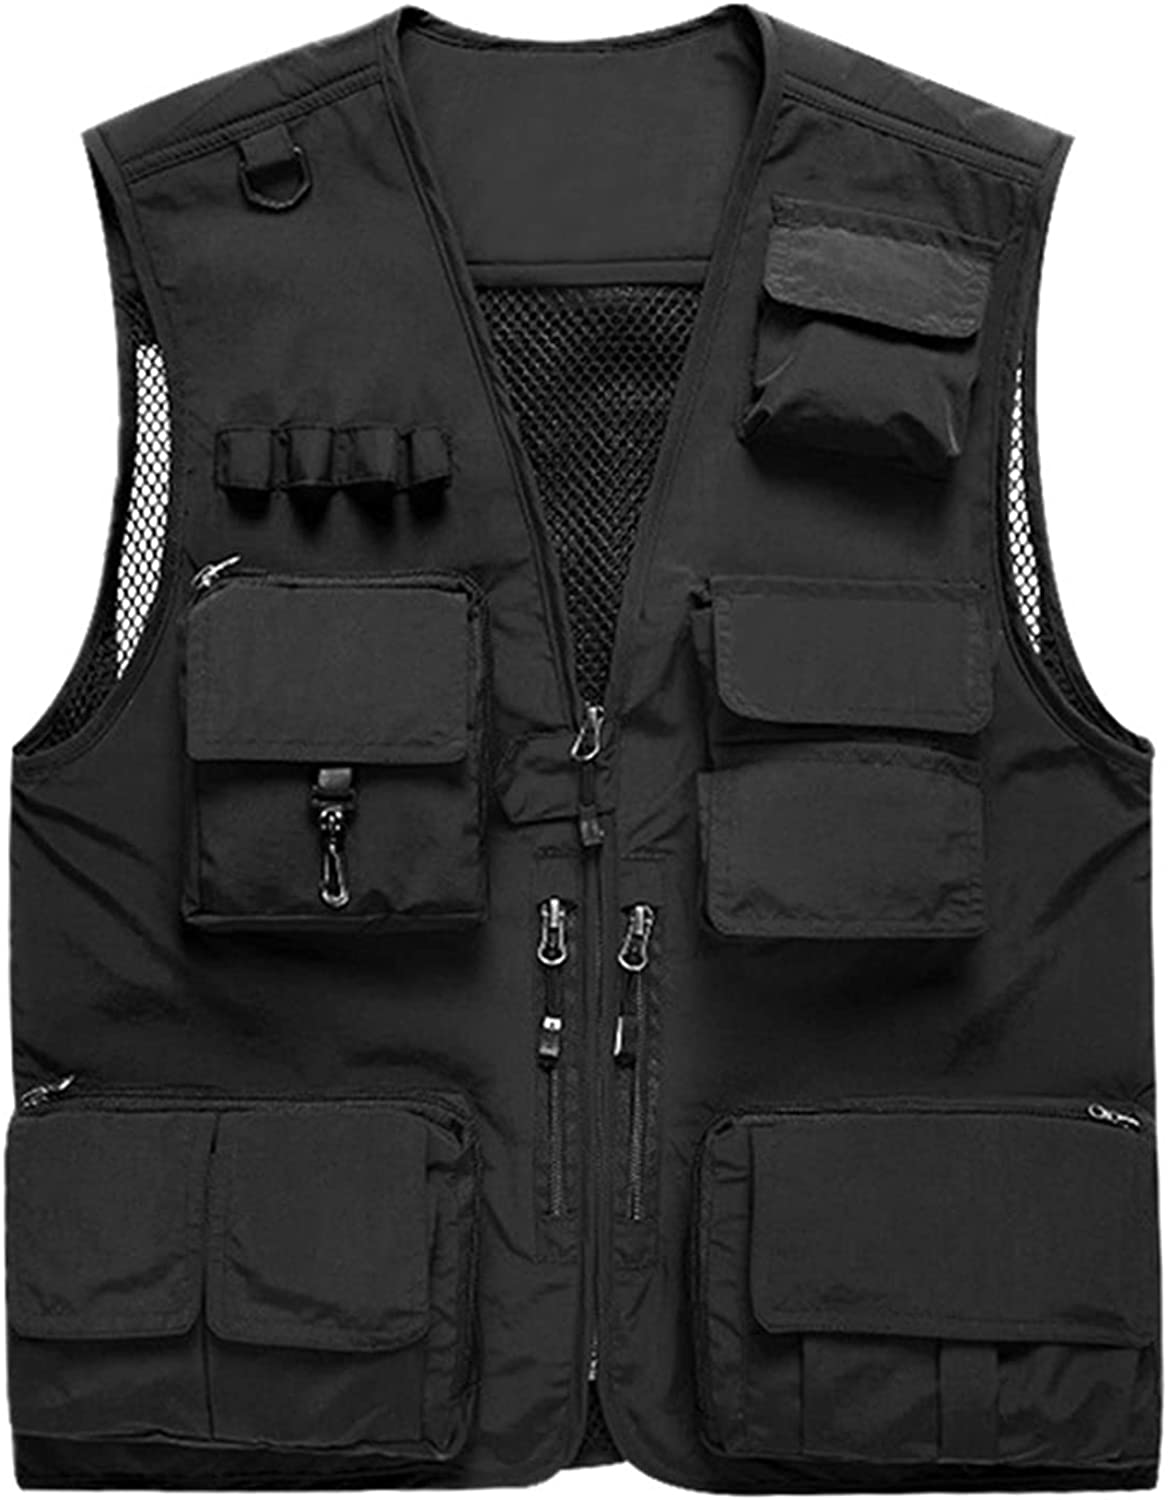 Super-cheap Prettychic Men's Outdoor Fishing Vest Mesh Vests Raleigh Mall Bre Work Casual